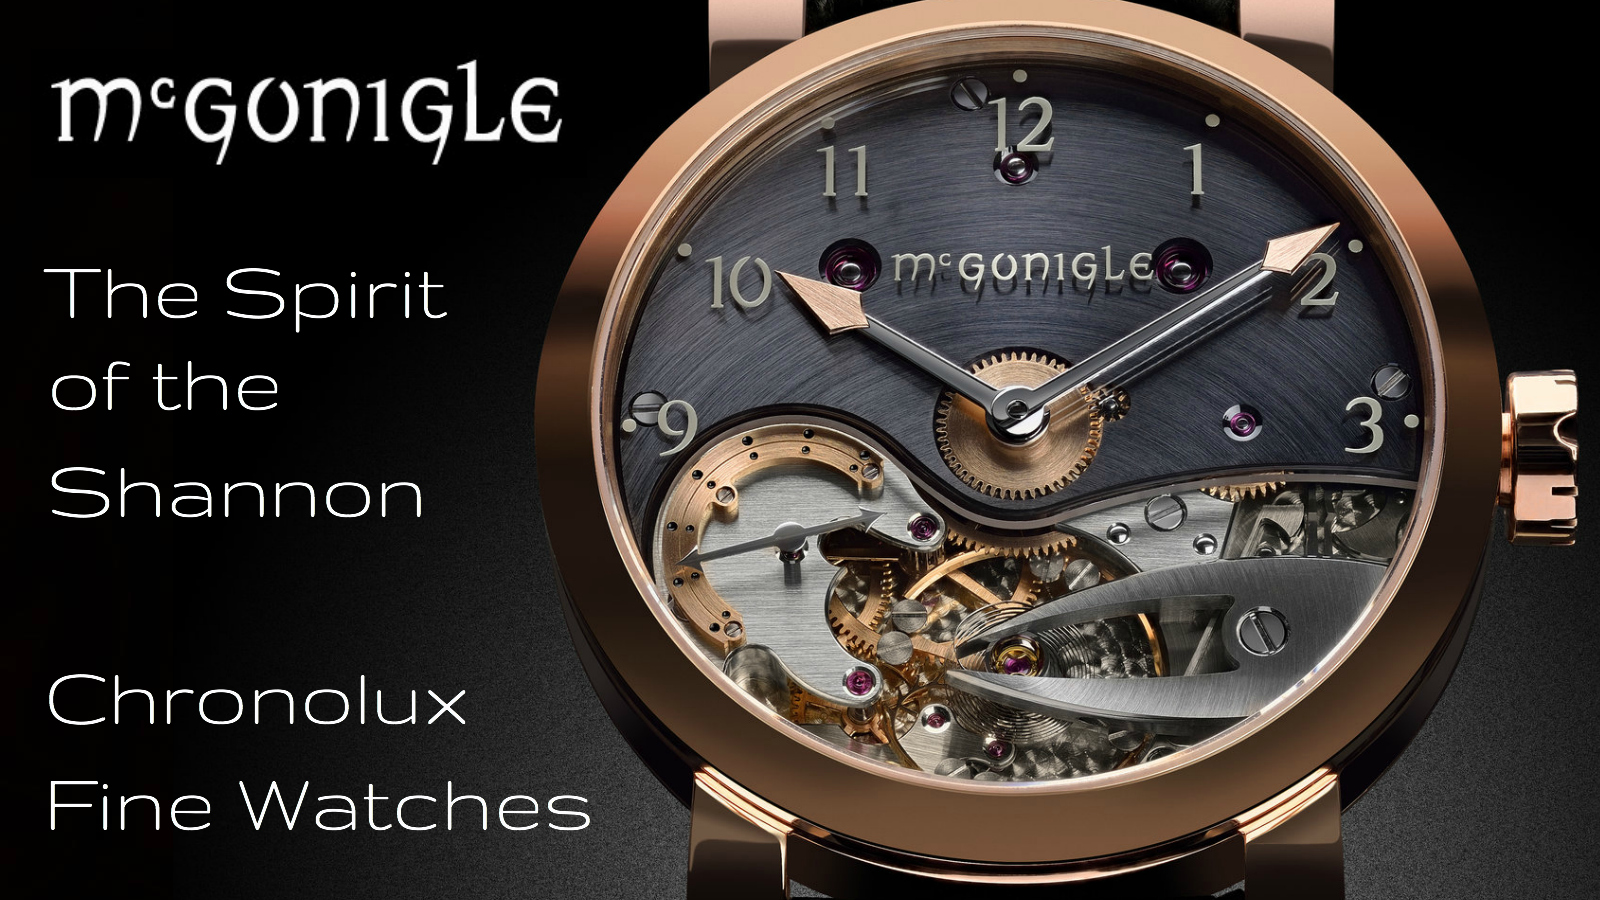 McGonigle watchmakers - Independent Watchmaking at Chronolux Fine Watches